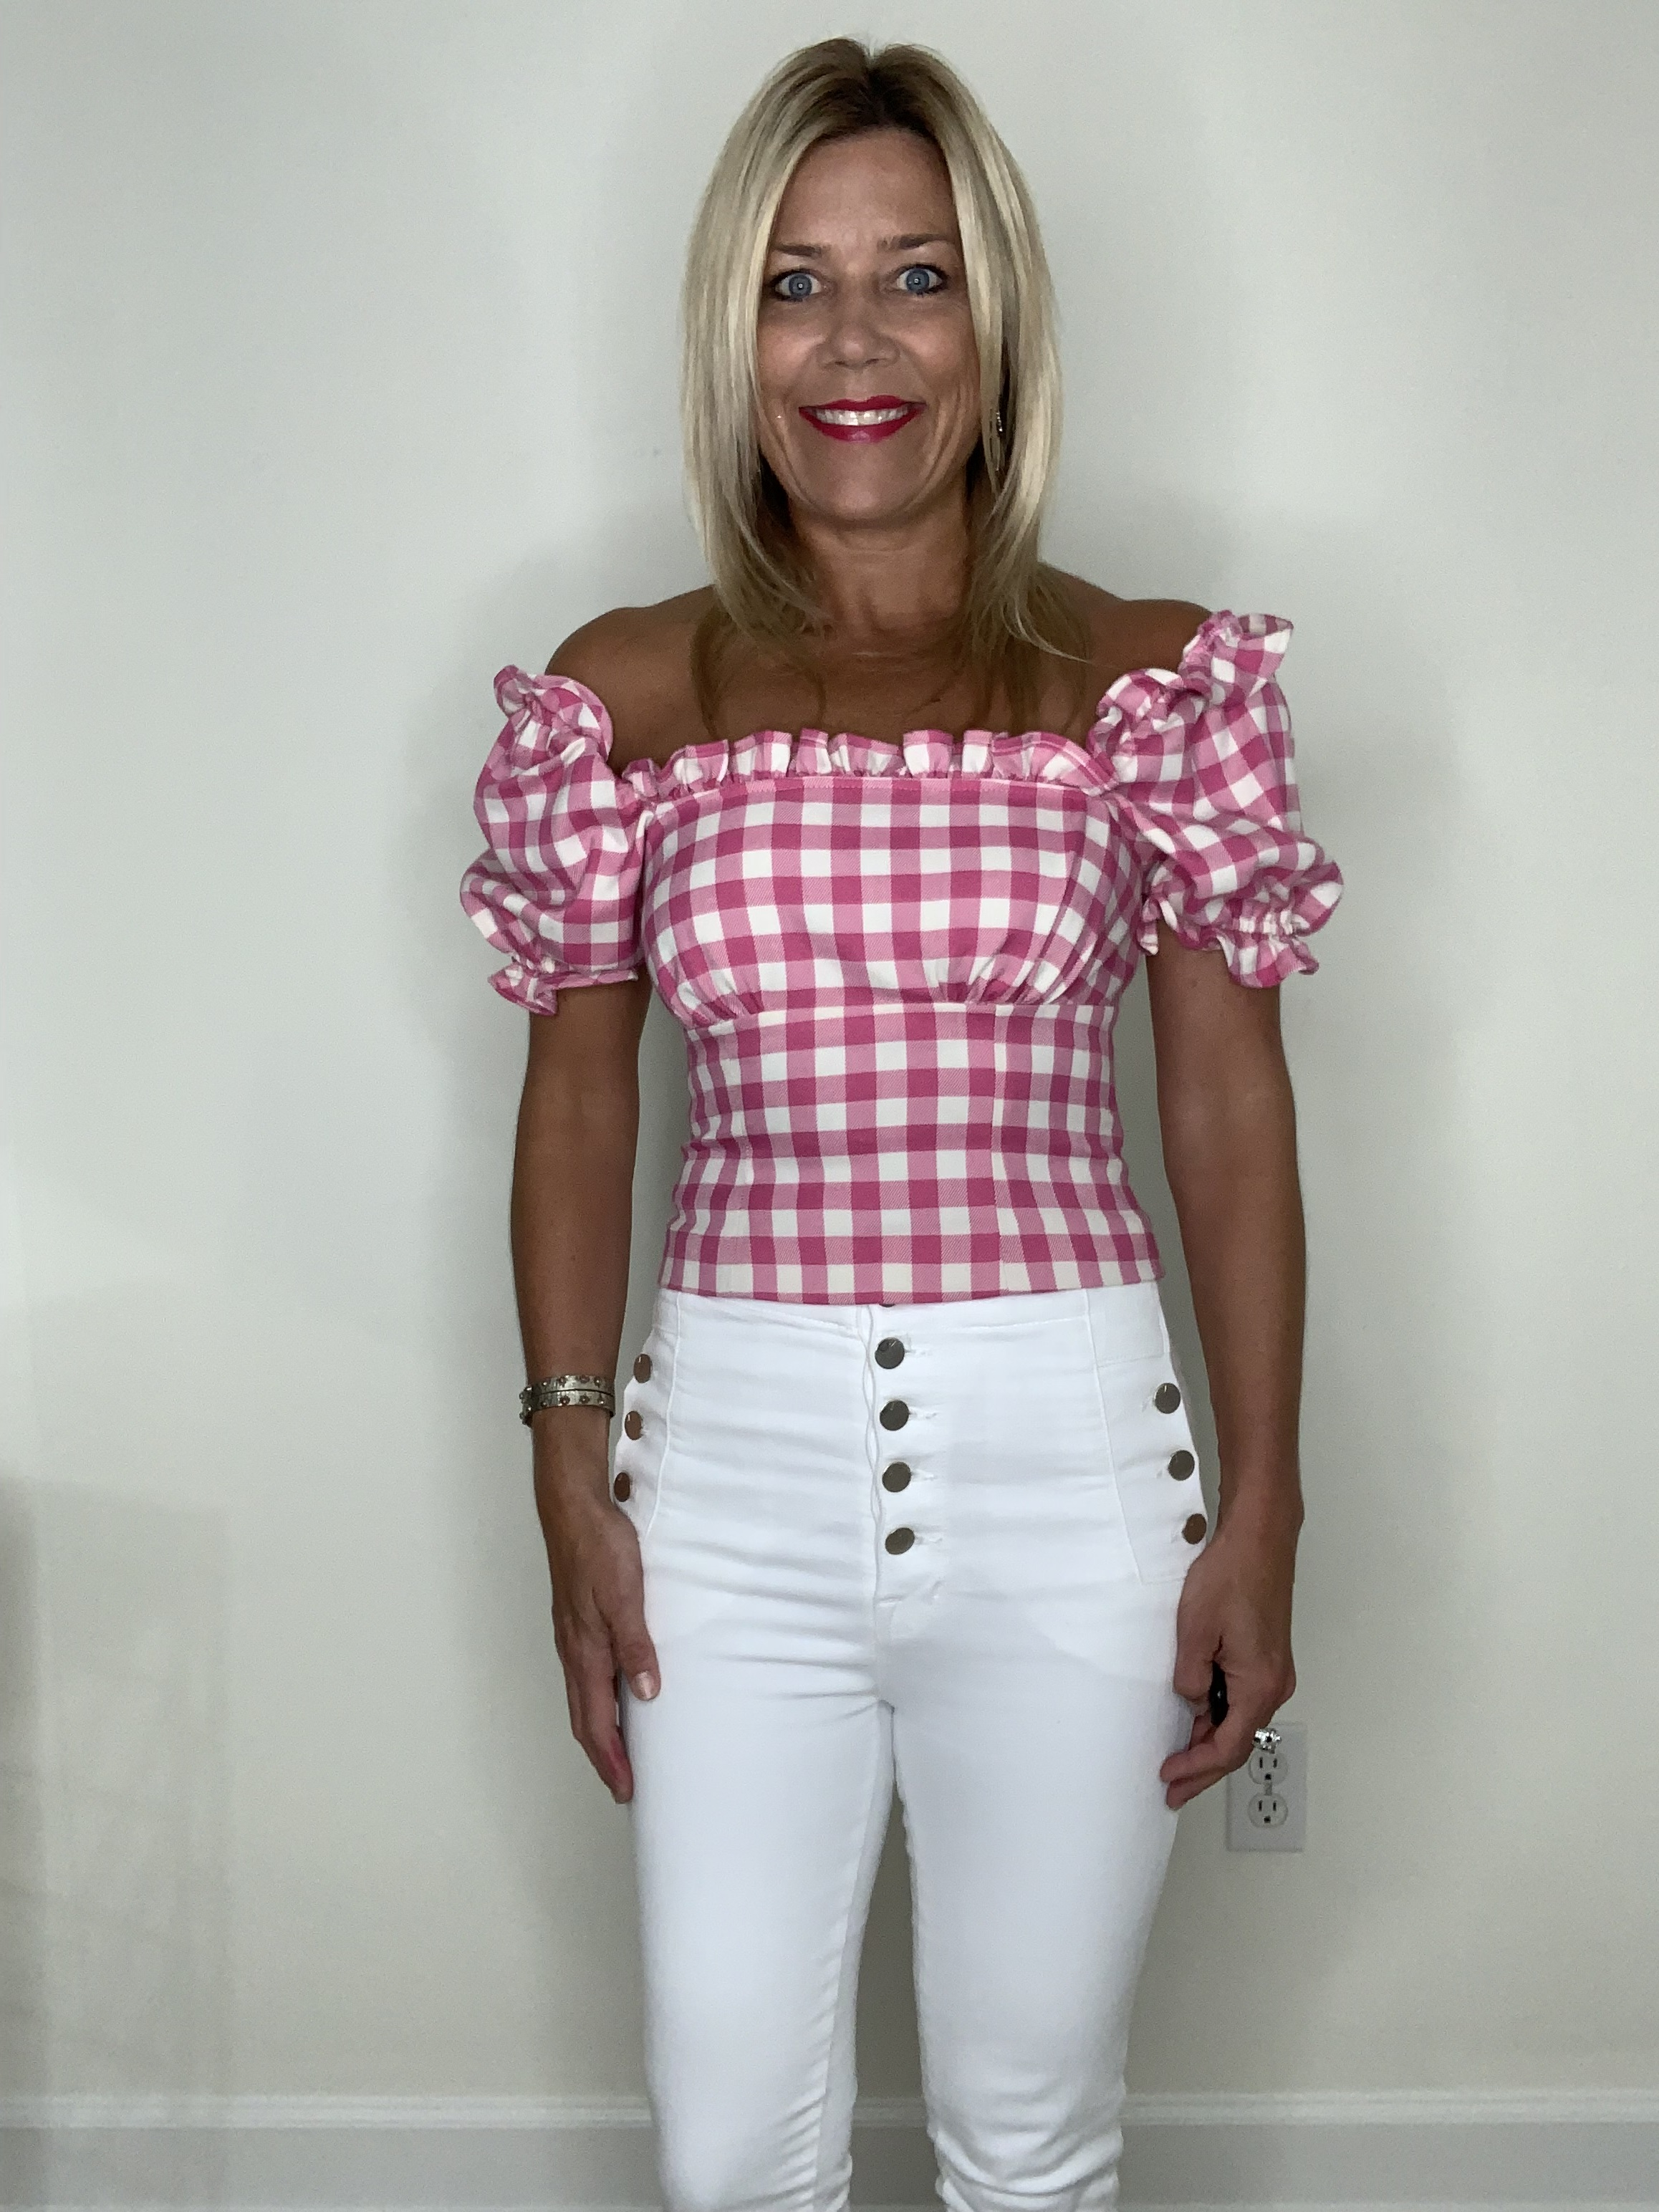 Ease your wardrobe into fall, gingham top, pink and white gingham top and white jeans